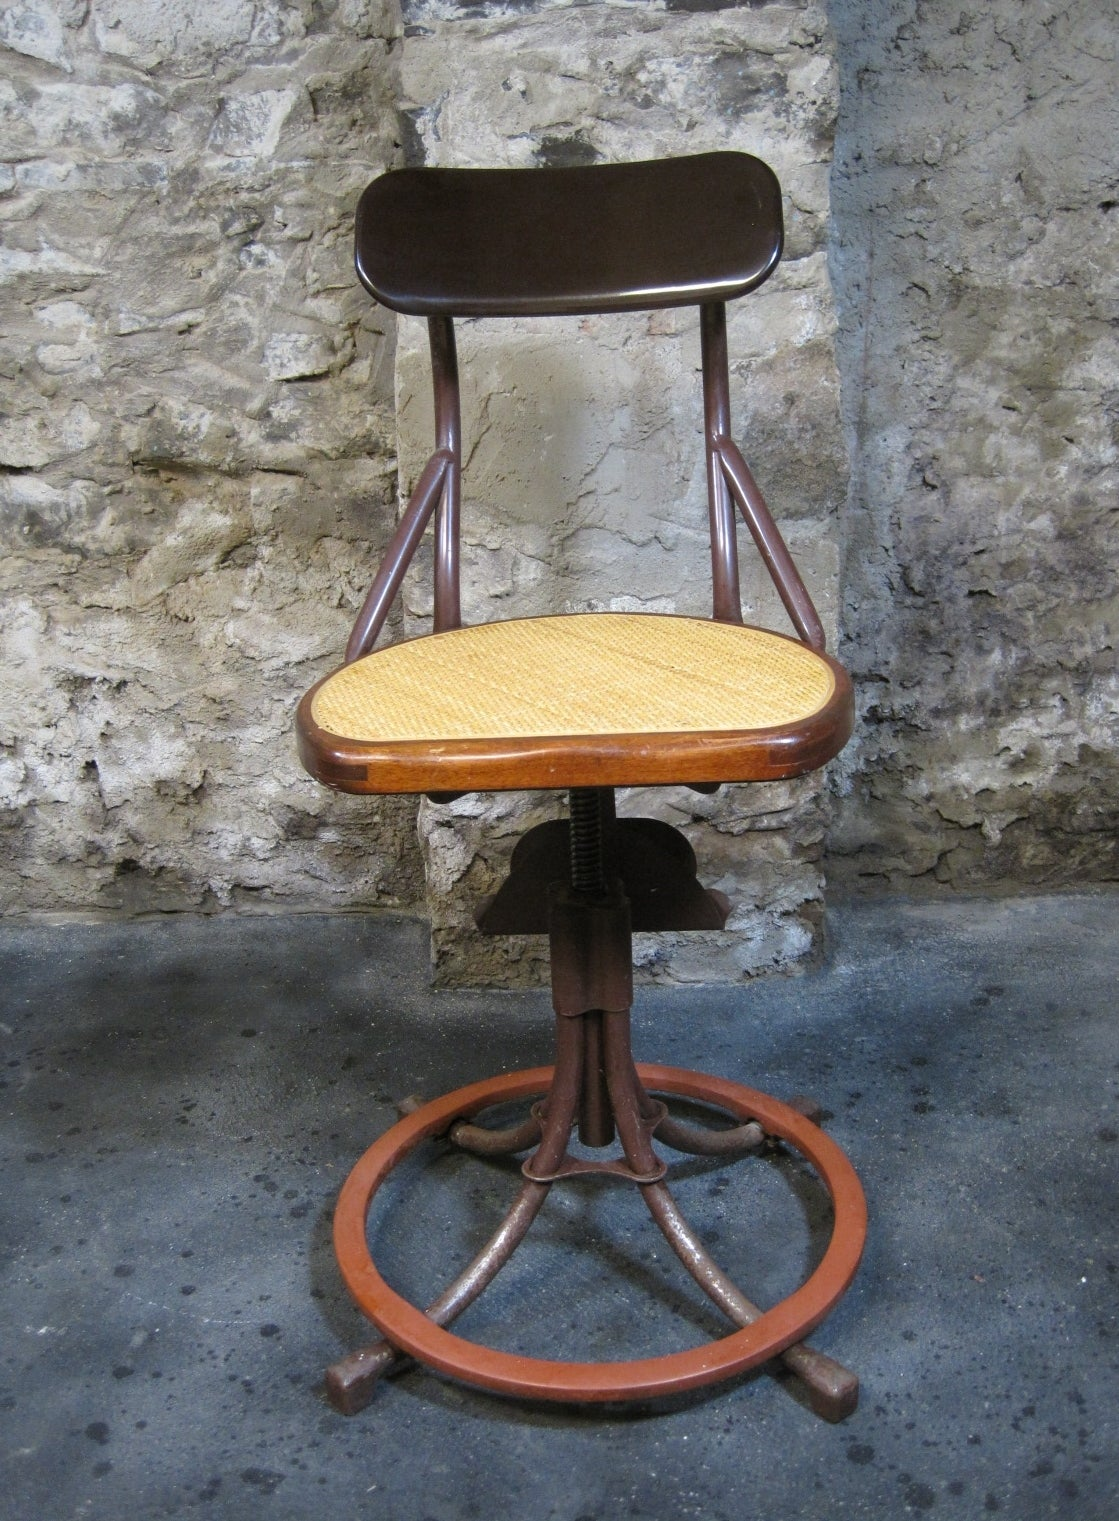 Machine Age Modern Medical Chair